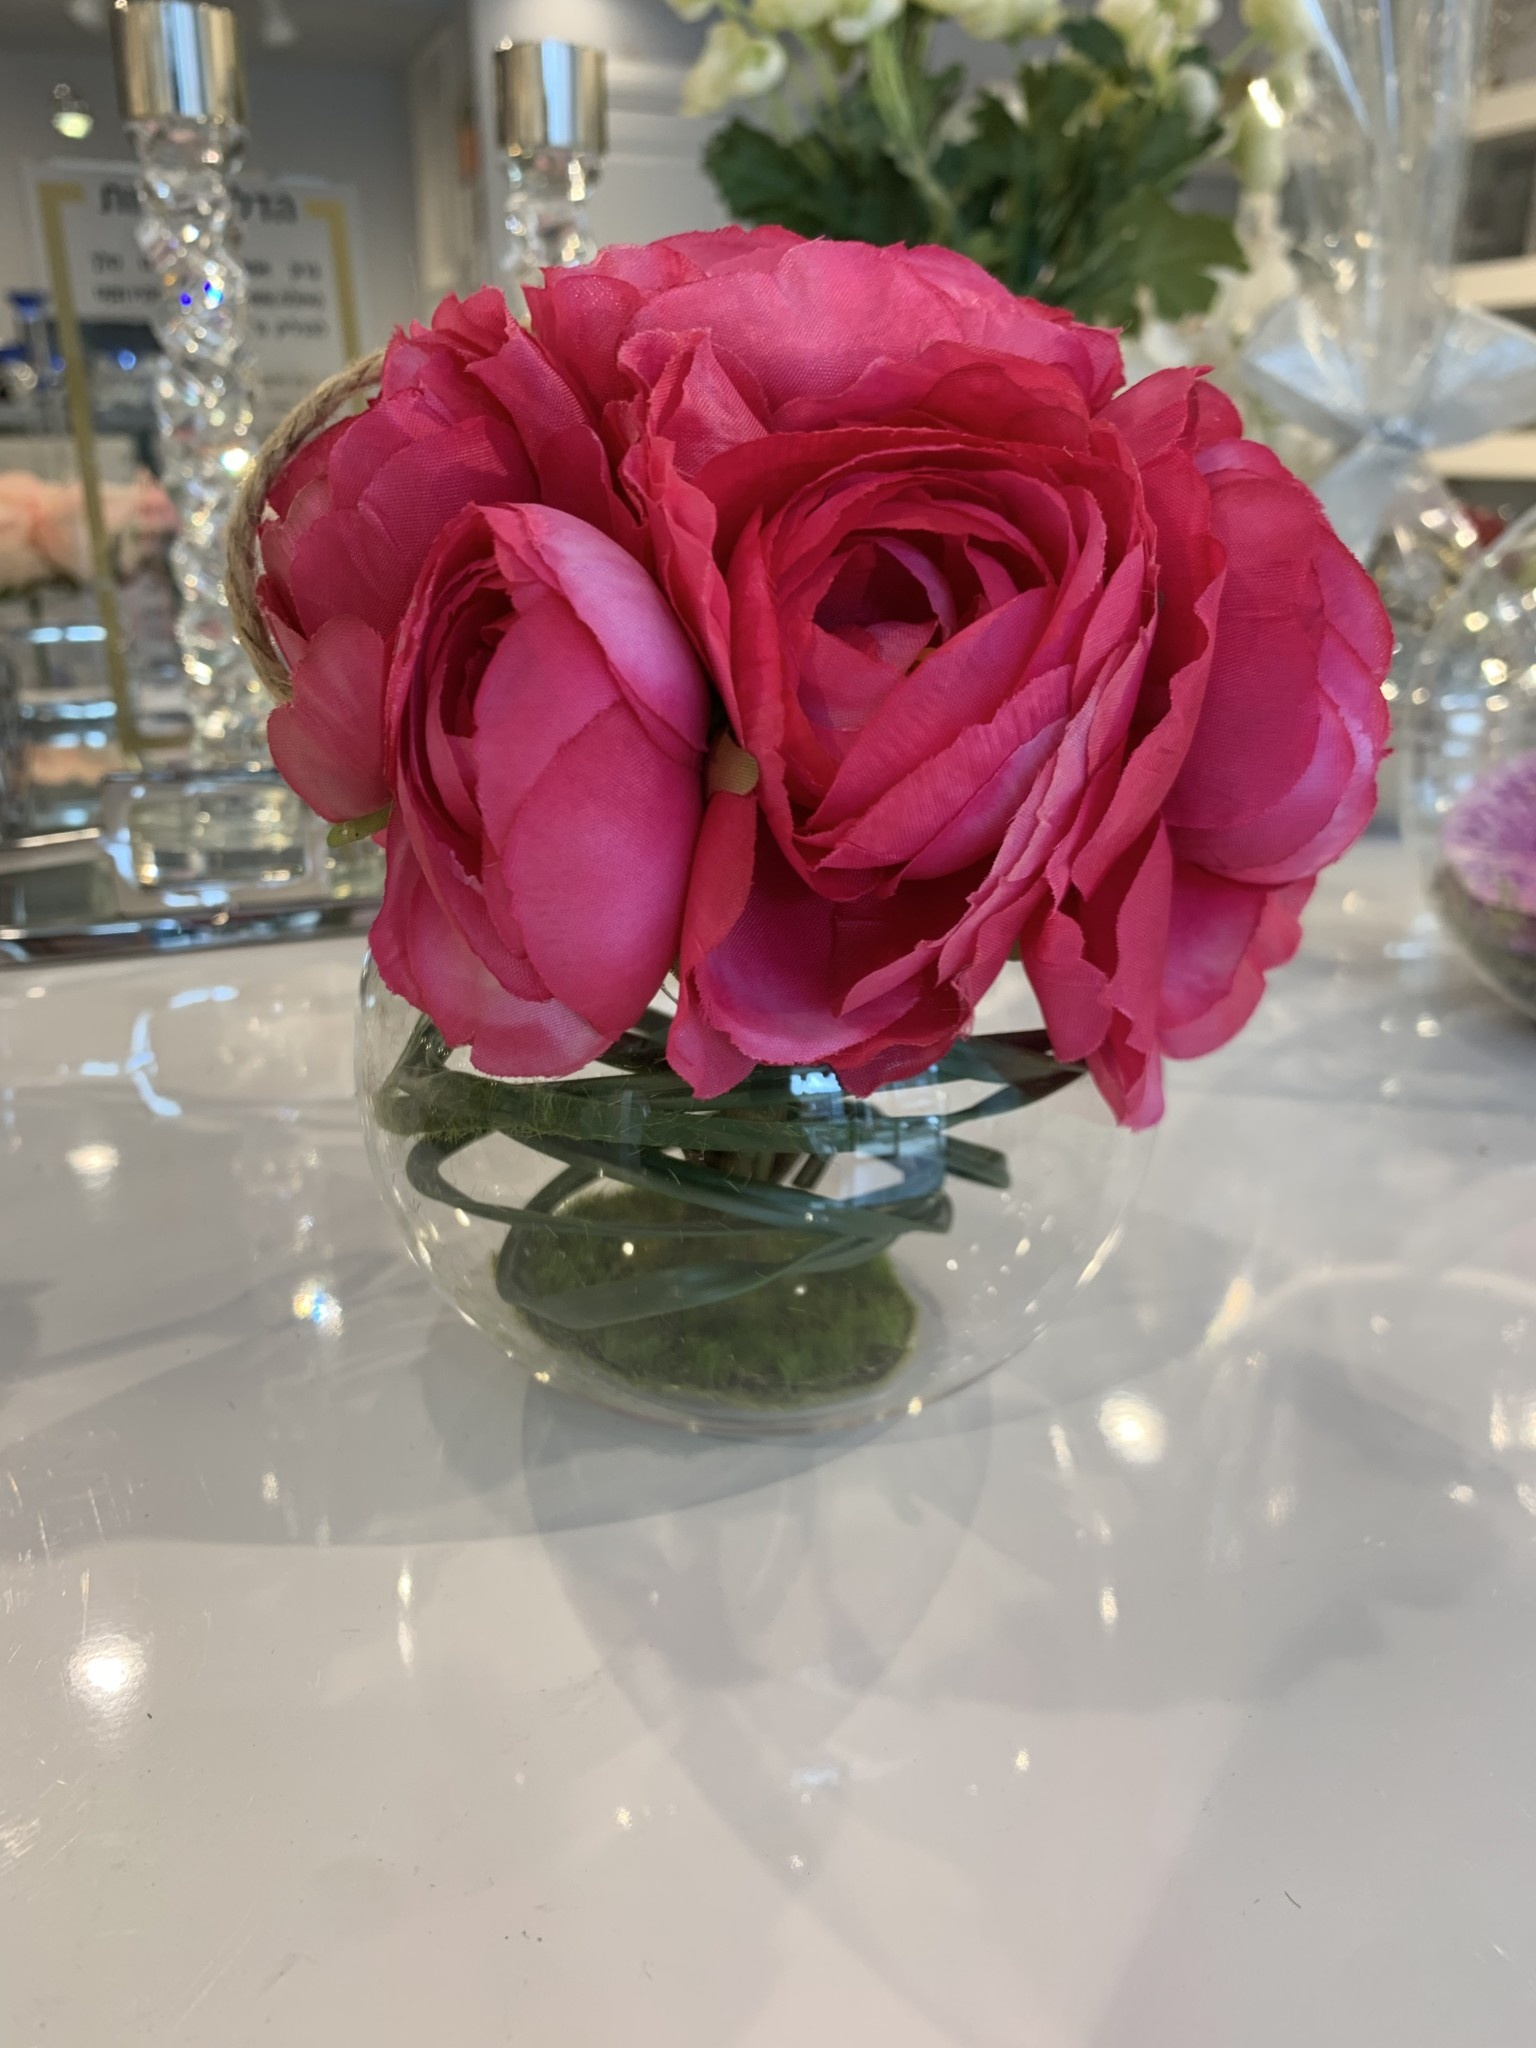 Round hanging glass with pink peonies